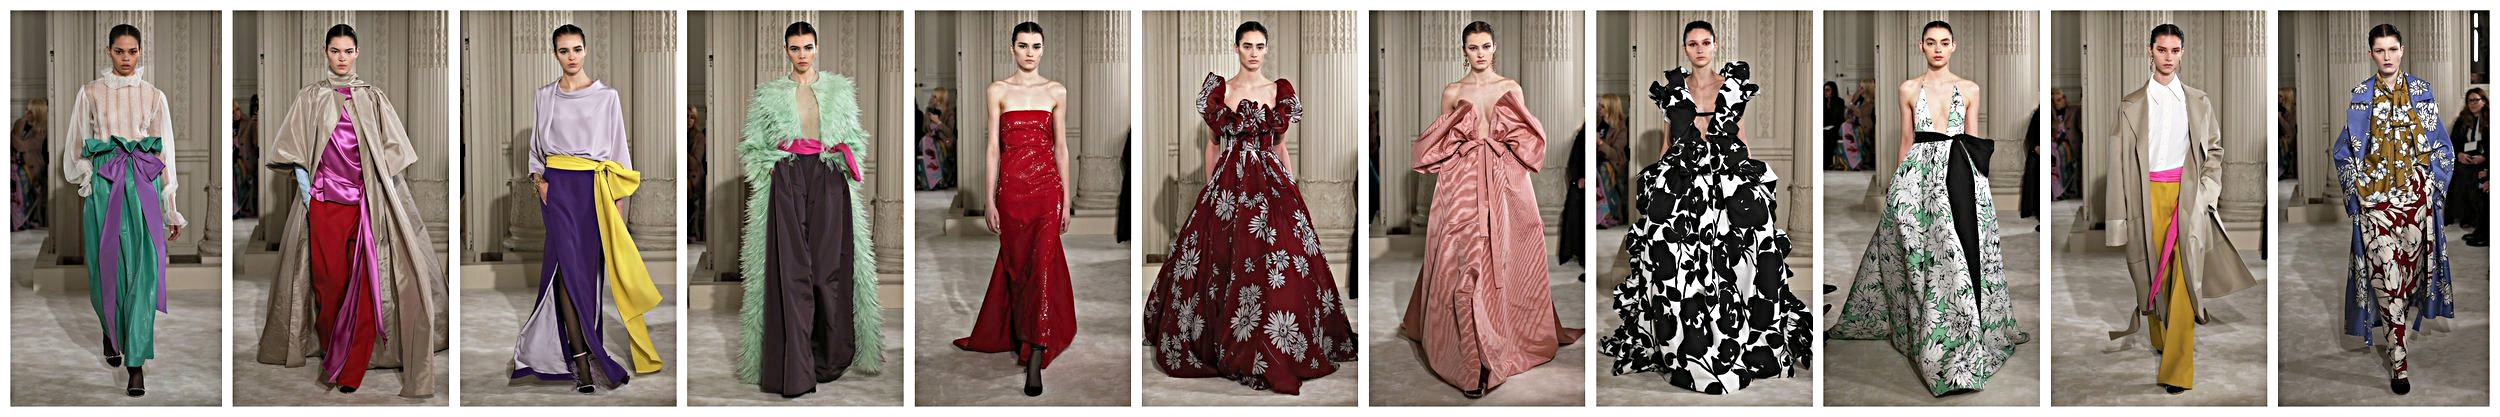 SPRING 2018 COUTURE   - PARIS